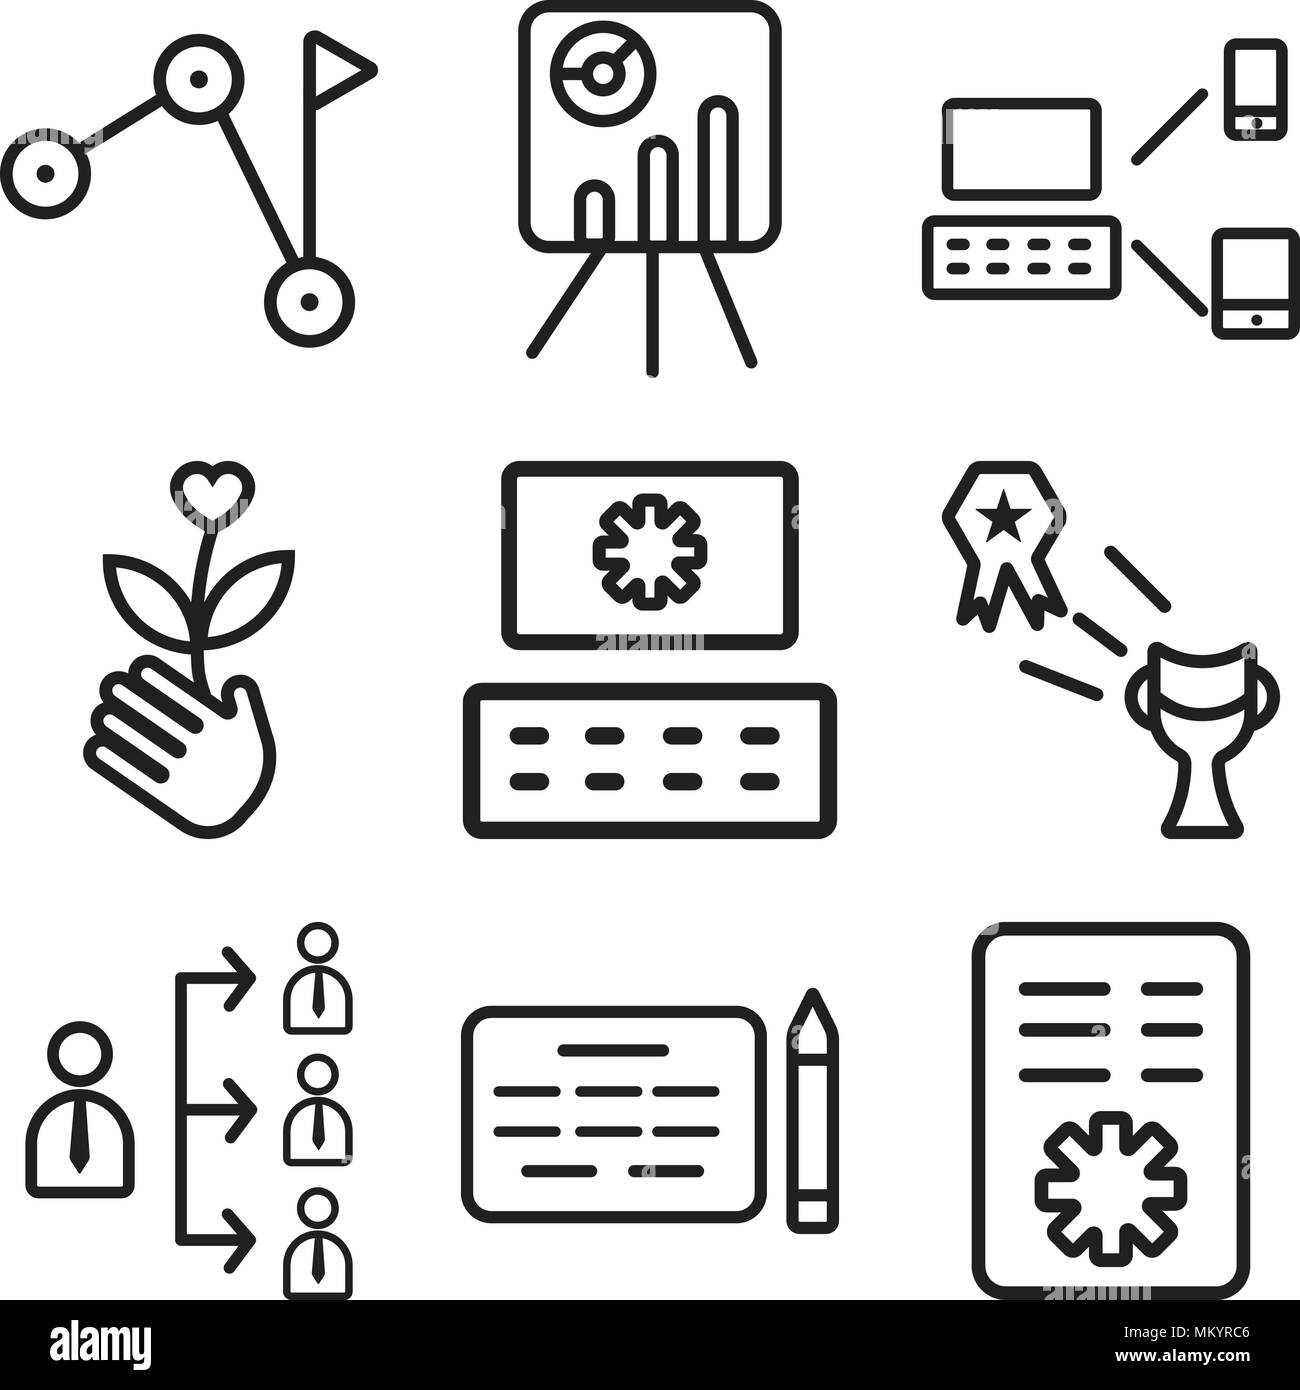 Set Of 9 simple editable icons such as Policy, Agreement, Teamwork, Trophy, Coding, Growth, Responsive, Presentation, Path, can be used for mobile, we Stock Vector